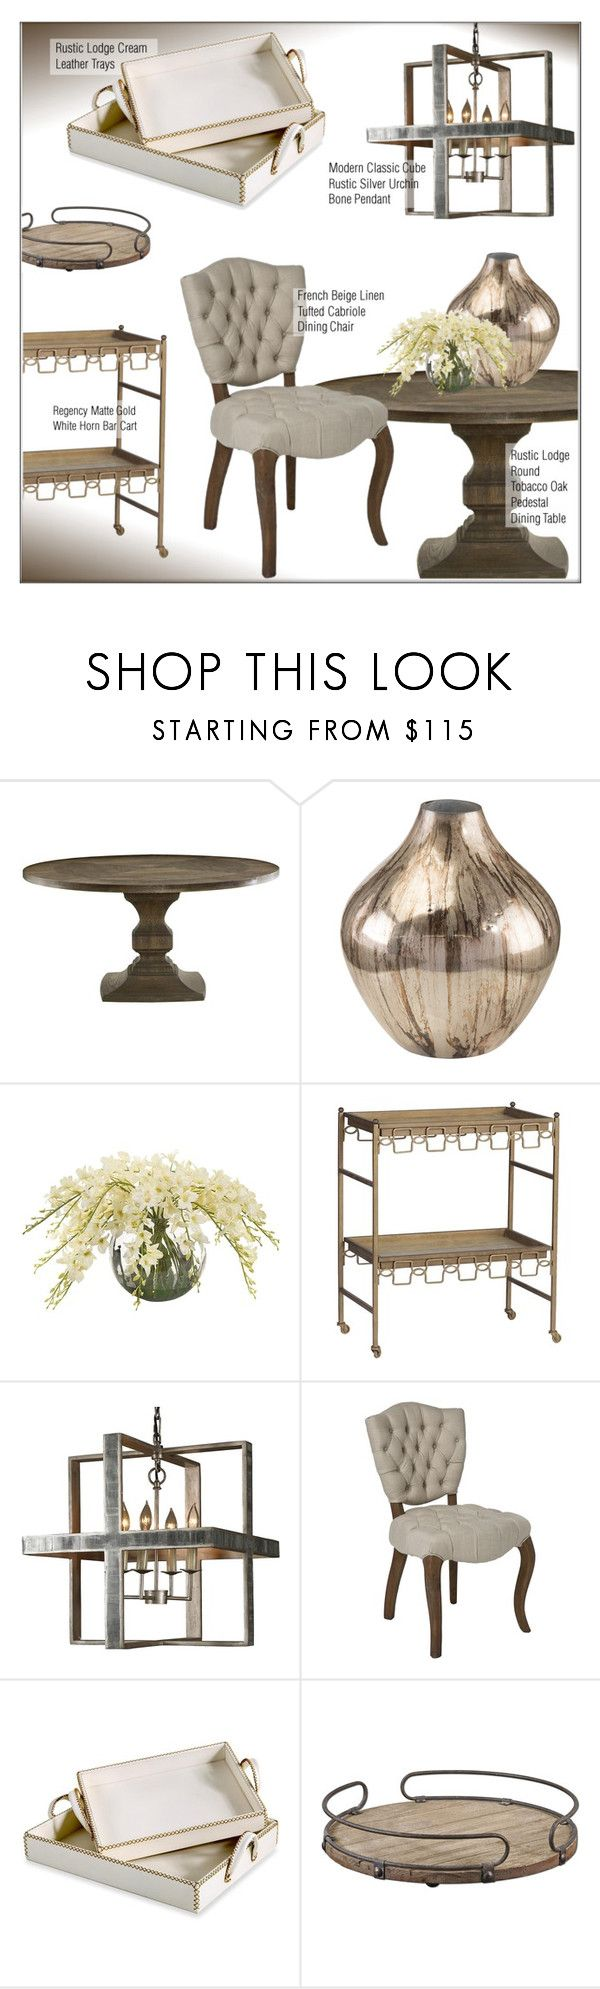 Home decor collage from january 2017 featuring currey company - Home Decor Collage From January 2017 Featuring Currey Company Dining Room Decor By Kathykuohome Liked Download